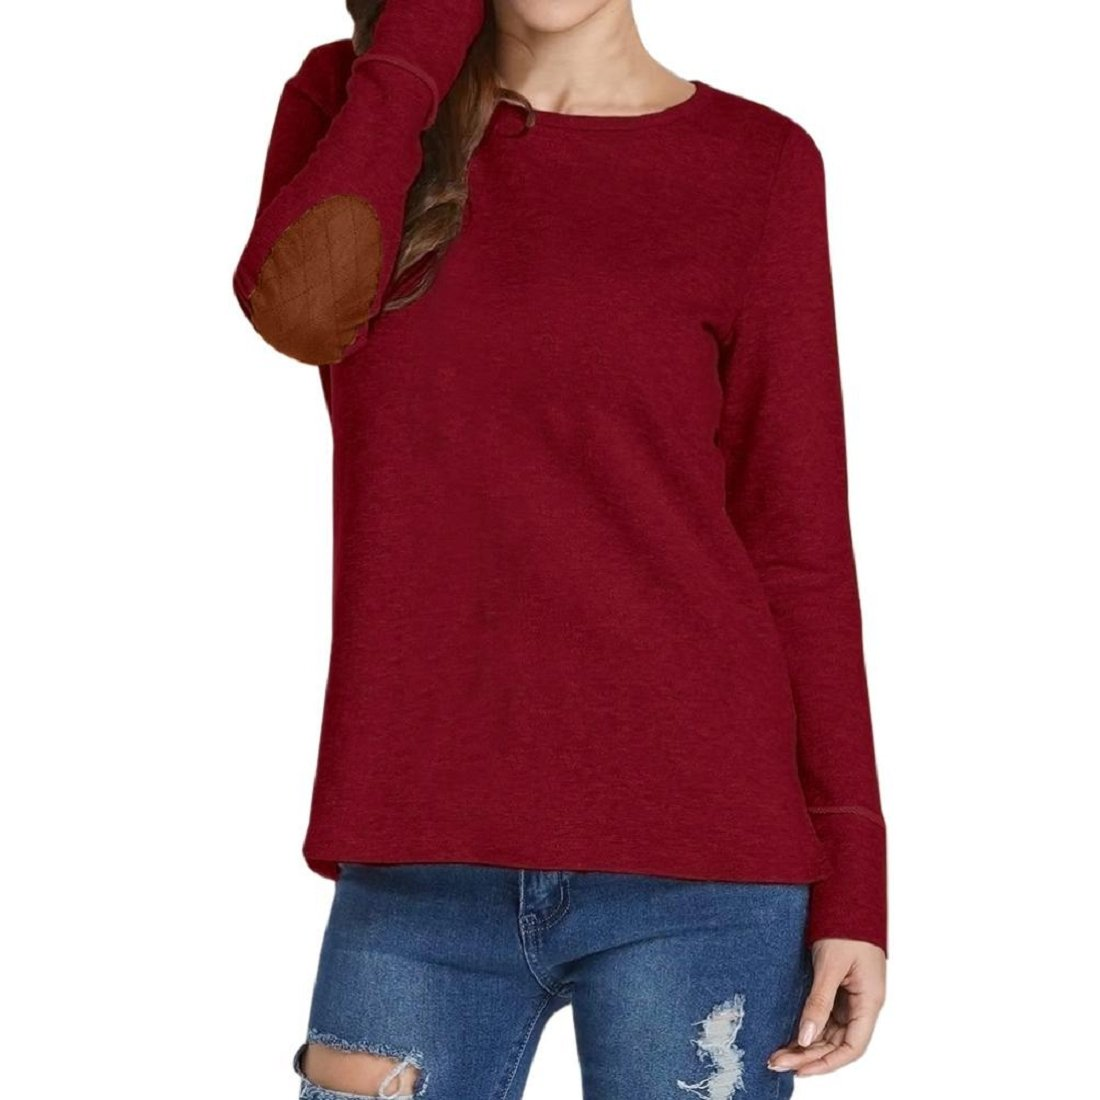 GONKOMA Hot Sale! Womens Blouse Casual Long Sleeve O Neck T Shirt Pullover Sweatshirt Loose Patchwork Tee Tops Wine Red) XWJ520